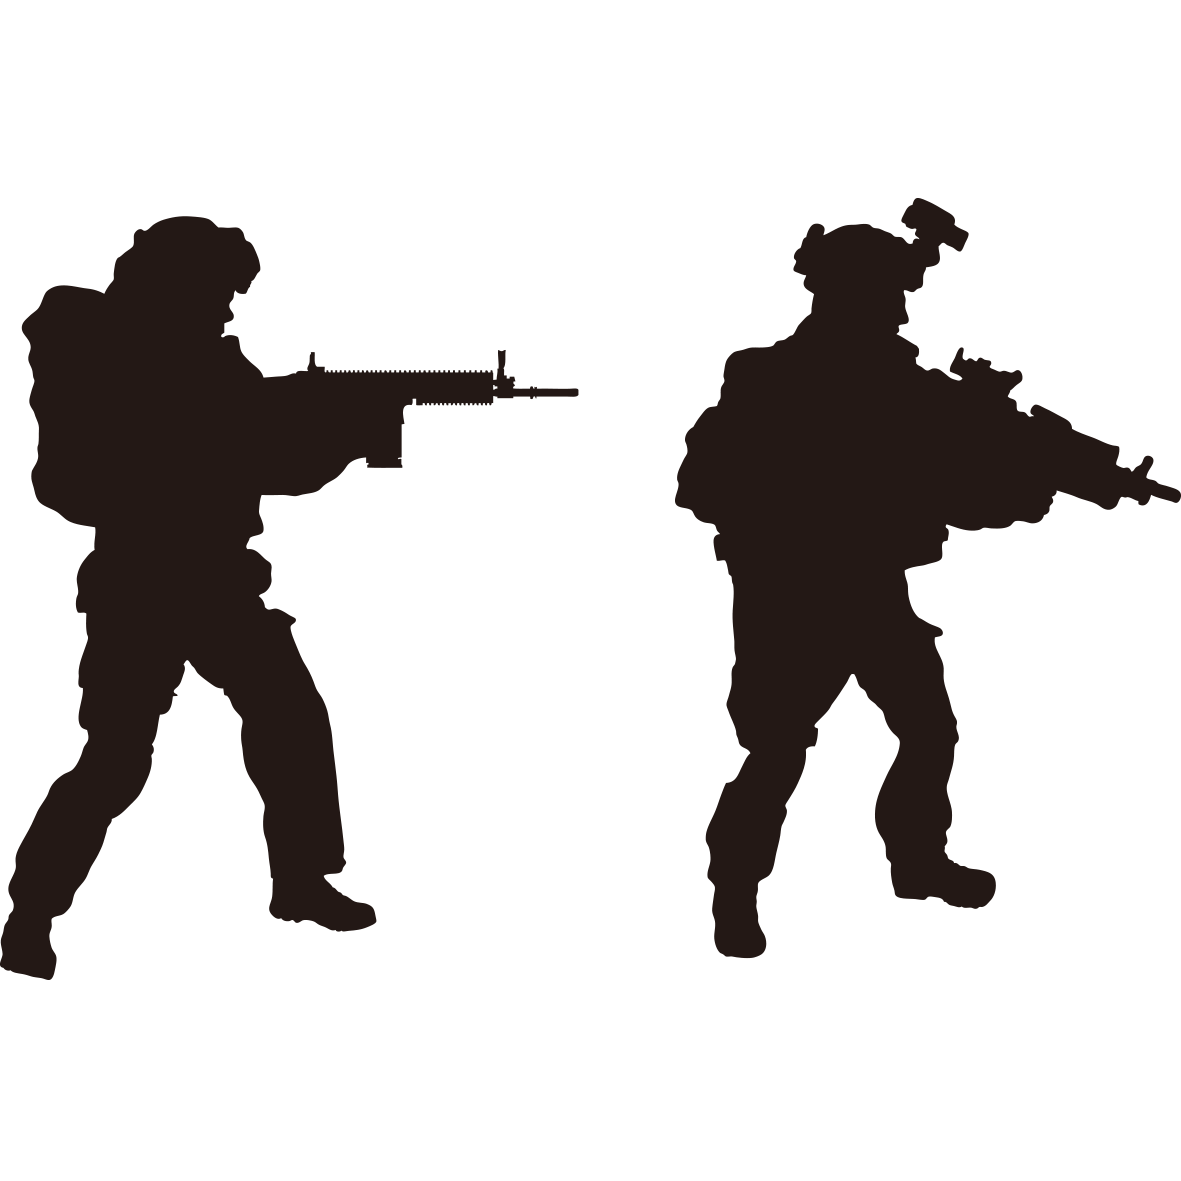 Soldier Silhouette Royalty-free Military - Interpol ... - Printable Soldier Silhouette